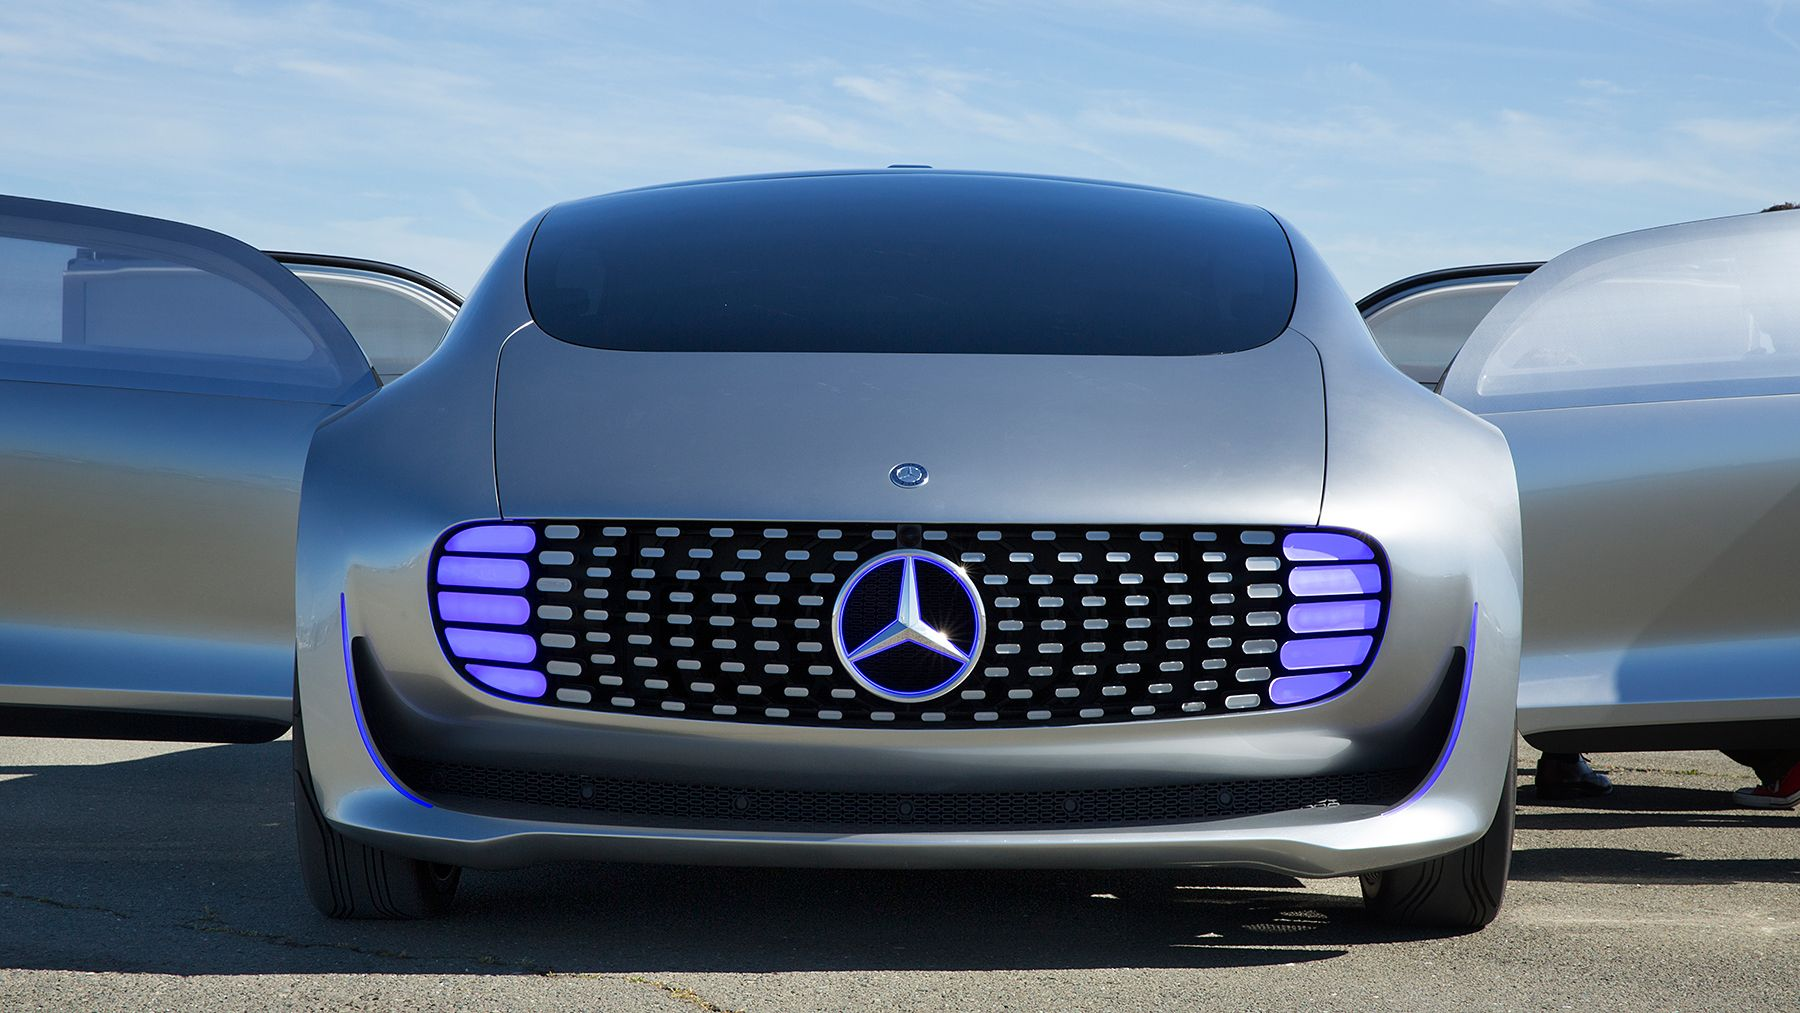 The Mercedes RoboCar That Made Me Want to Stop Driving